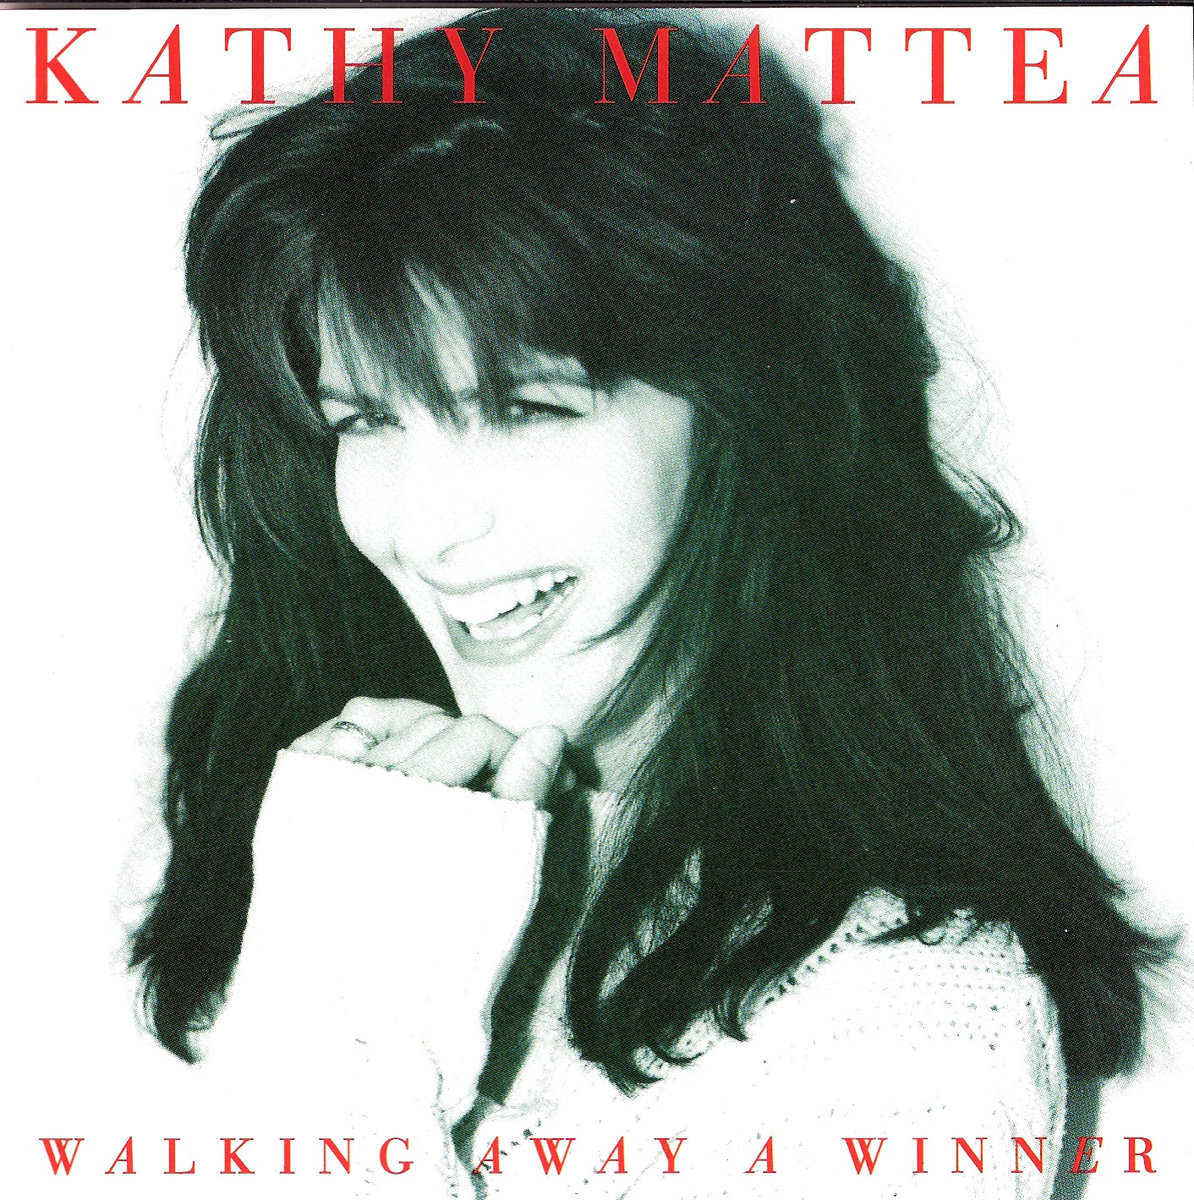 A Country Music Conversation Day 23 Walking Away A Winner To